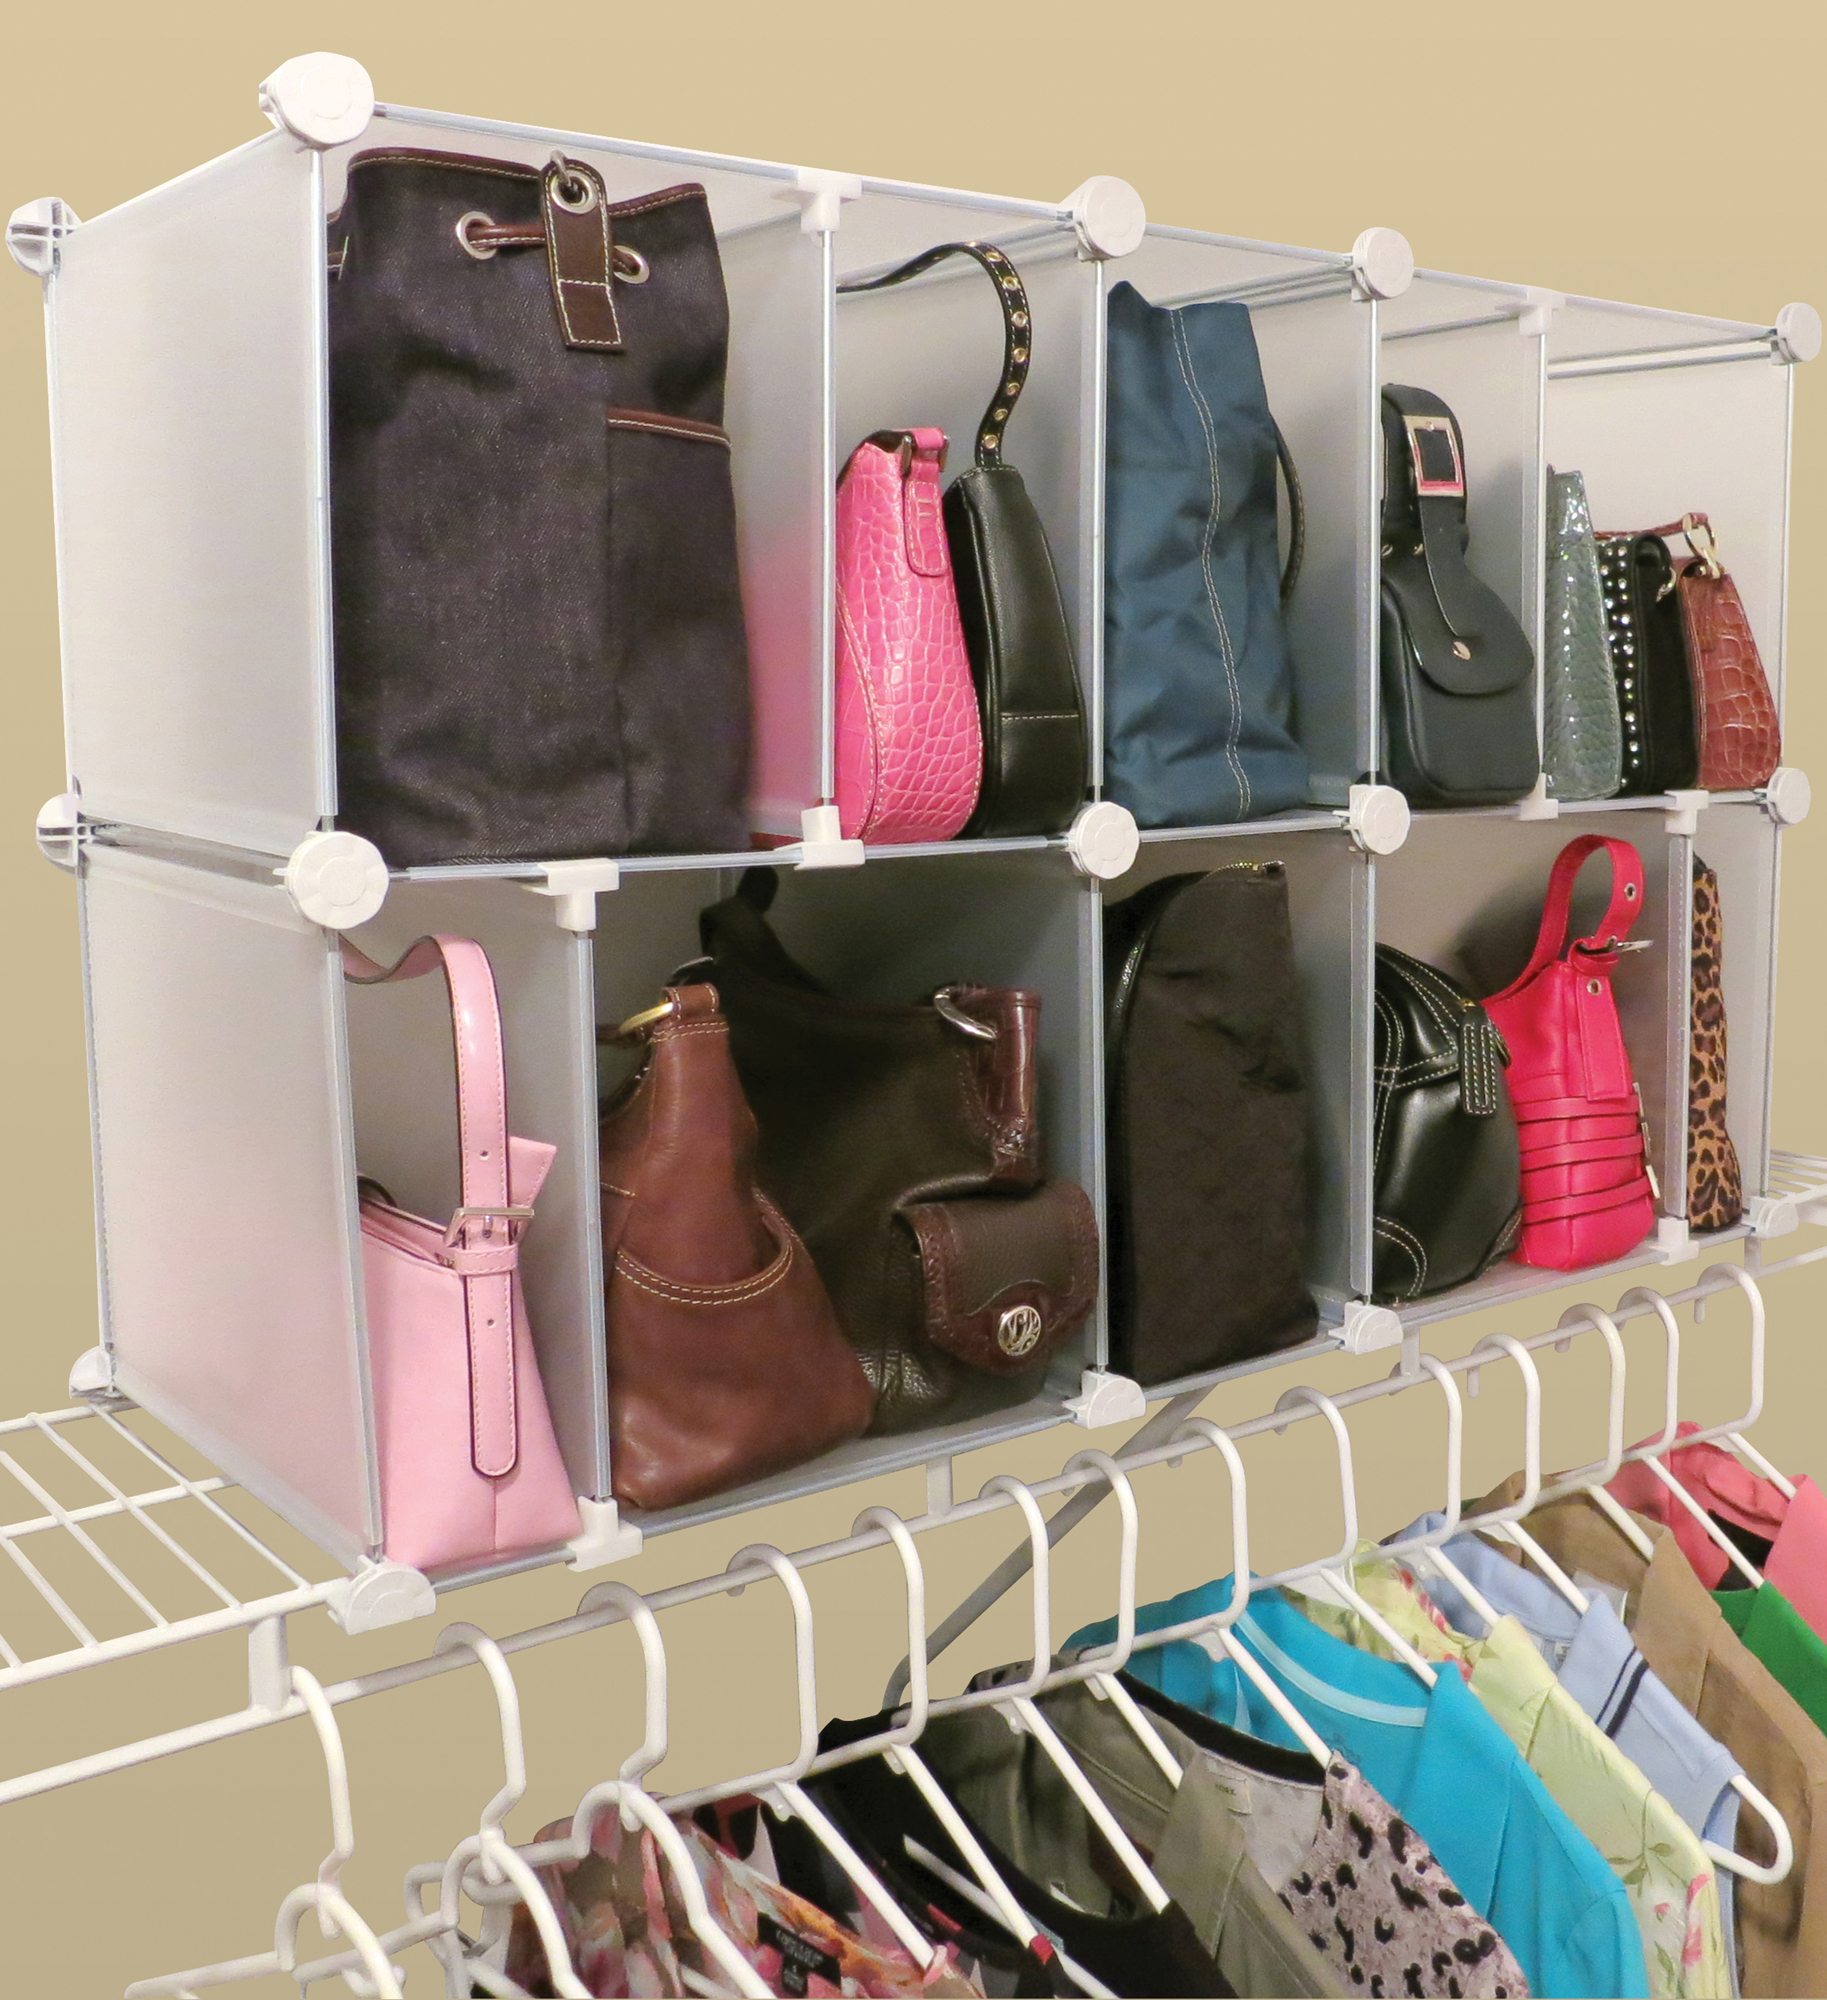 Park-A-Purse Modular Organizer in Purse Organizers